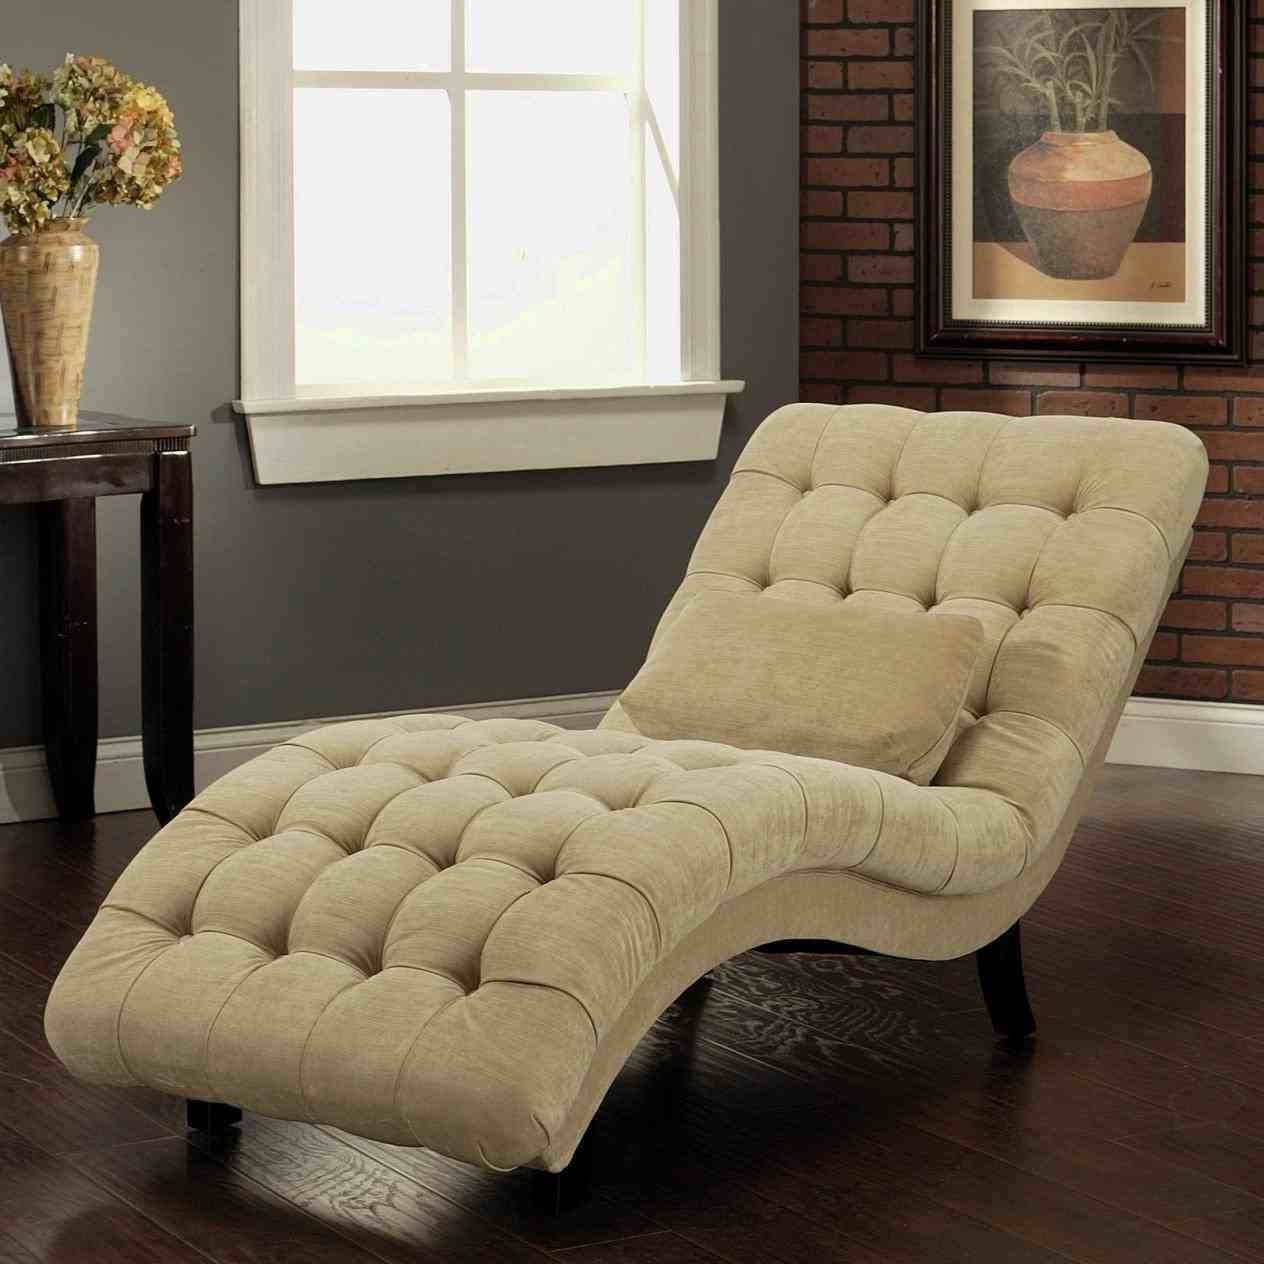 Best And Newest Oversized Chaise Lounges For Living Room : Digital Camera Stunning Living Room With Chaise (View 2 of 15)